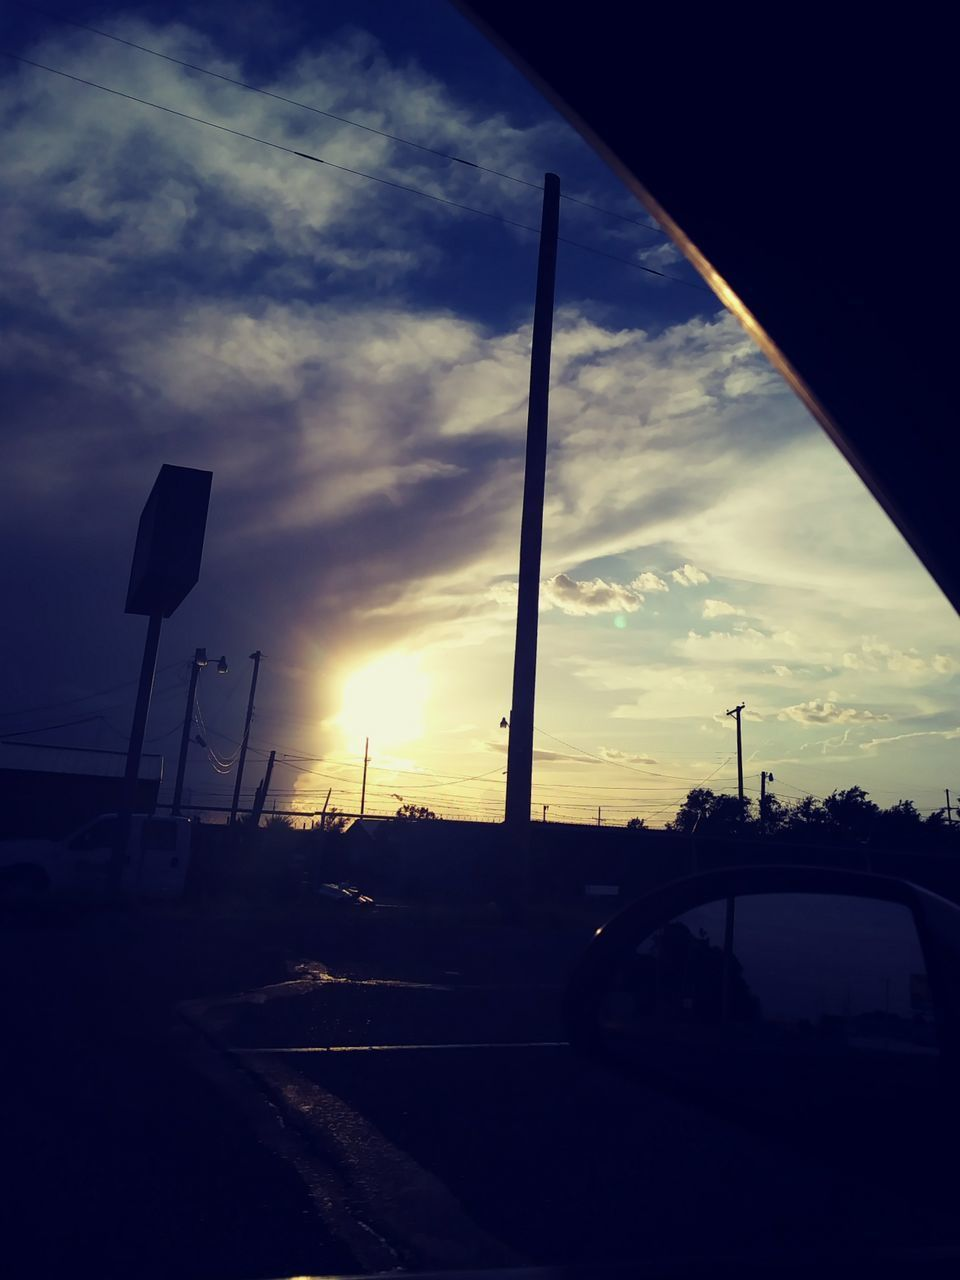 sunset, sky, cloud - sky, car, transportation, silhouette, no people, land vehicle, sun, road, outdoors, nature, day